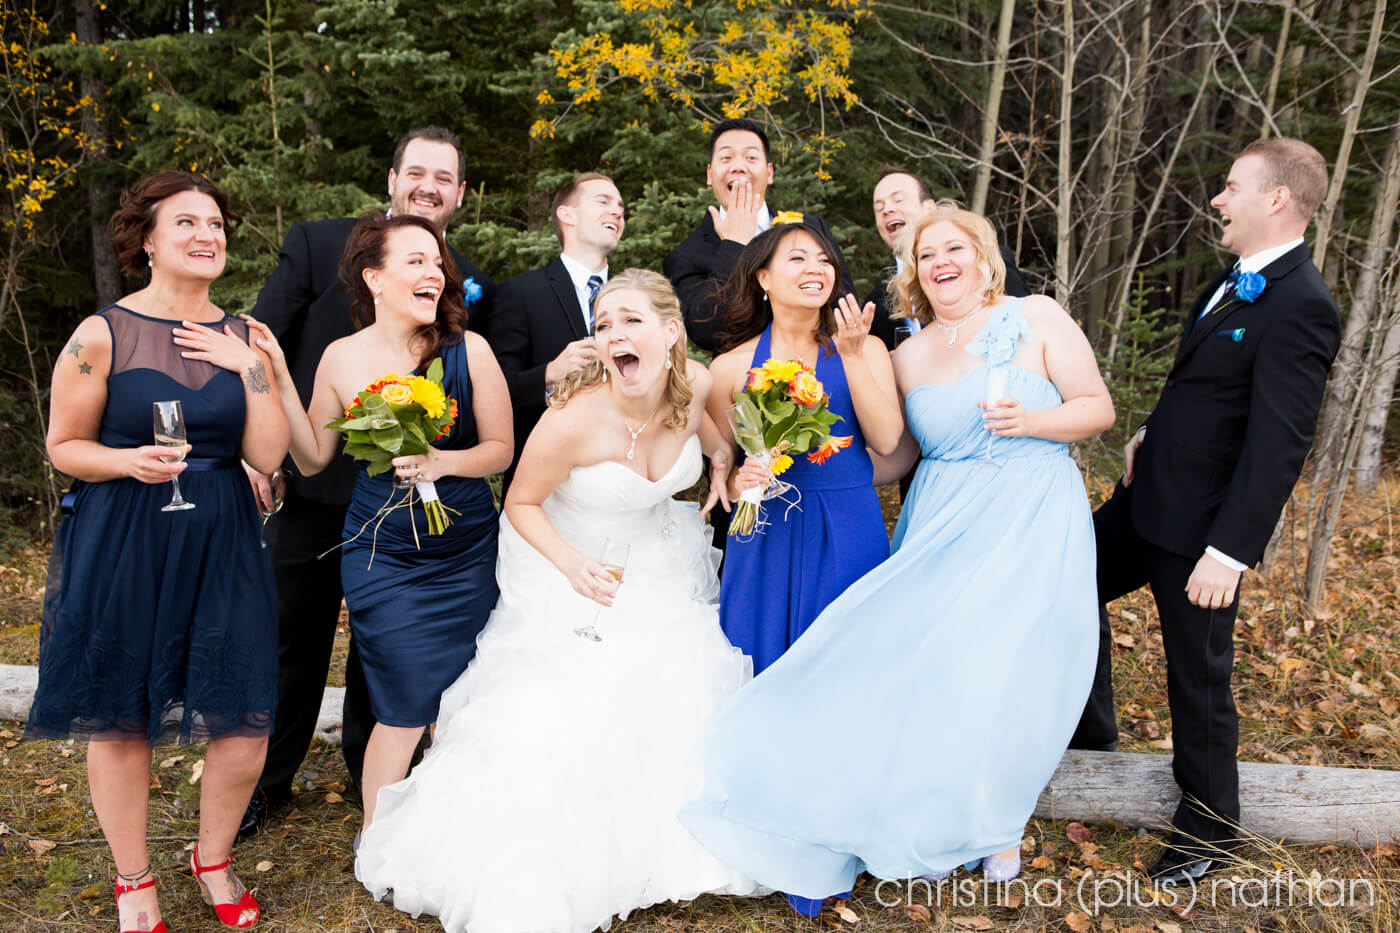 tj-wedding-lowres-820